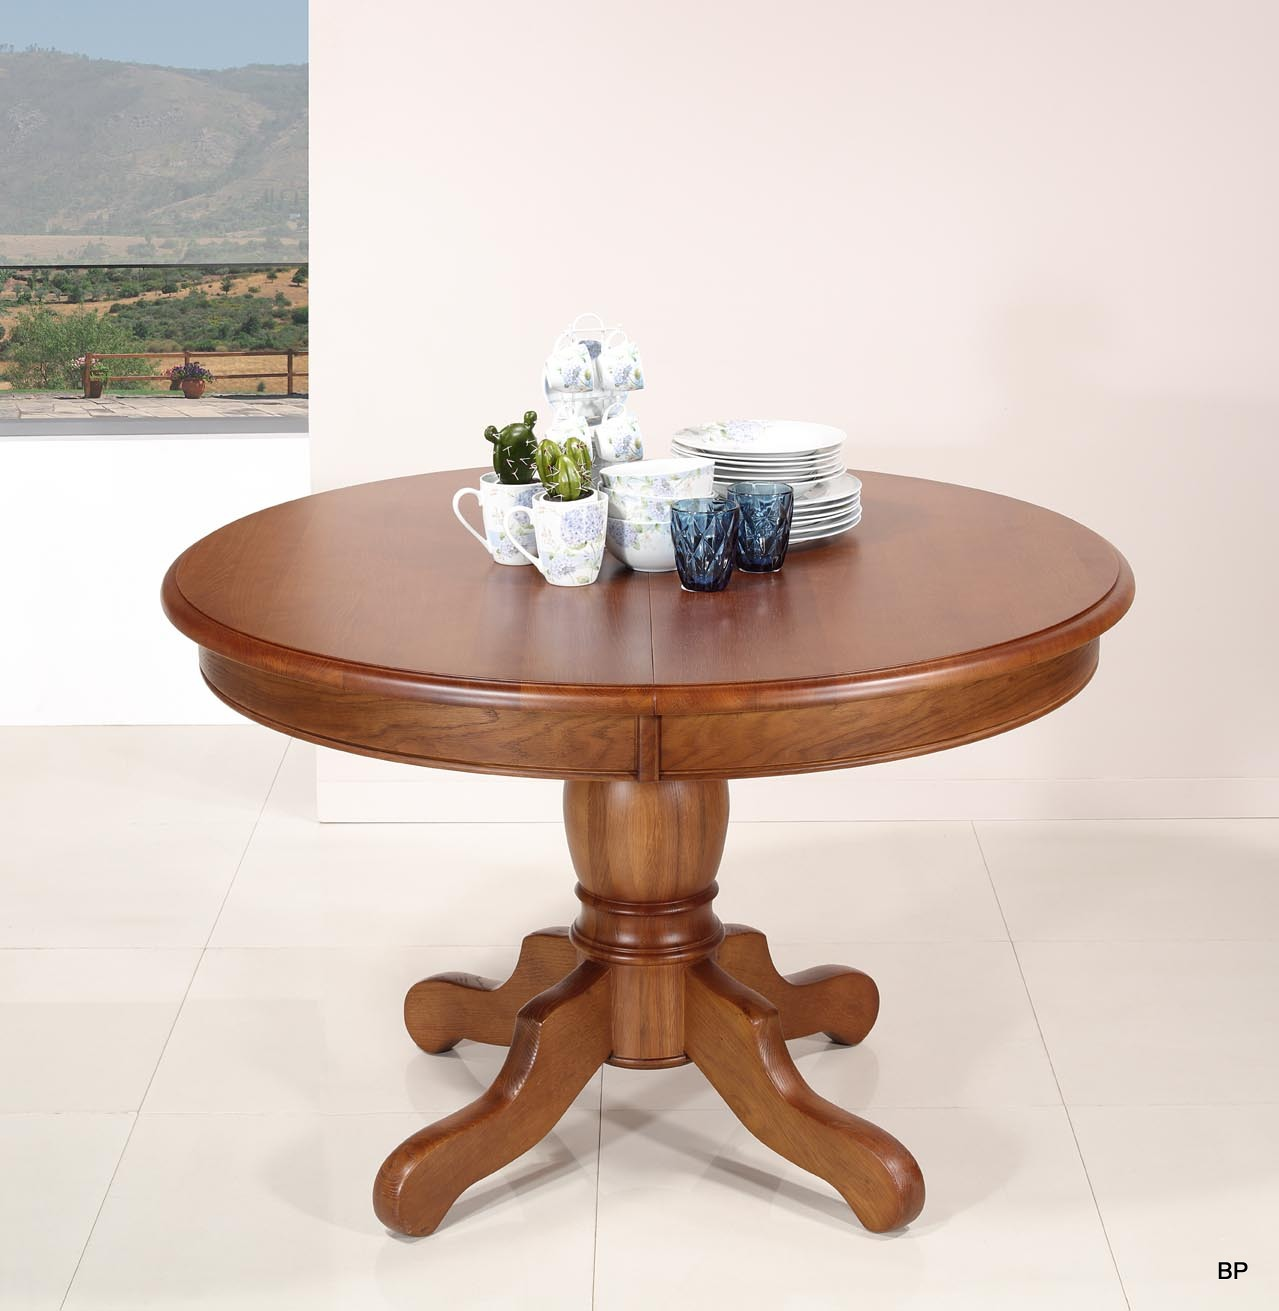 Table ronde pieds central  en Chêne de style Louis Philippe DIAMETRE 120 - 2 ALLONGES DE 40 CM